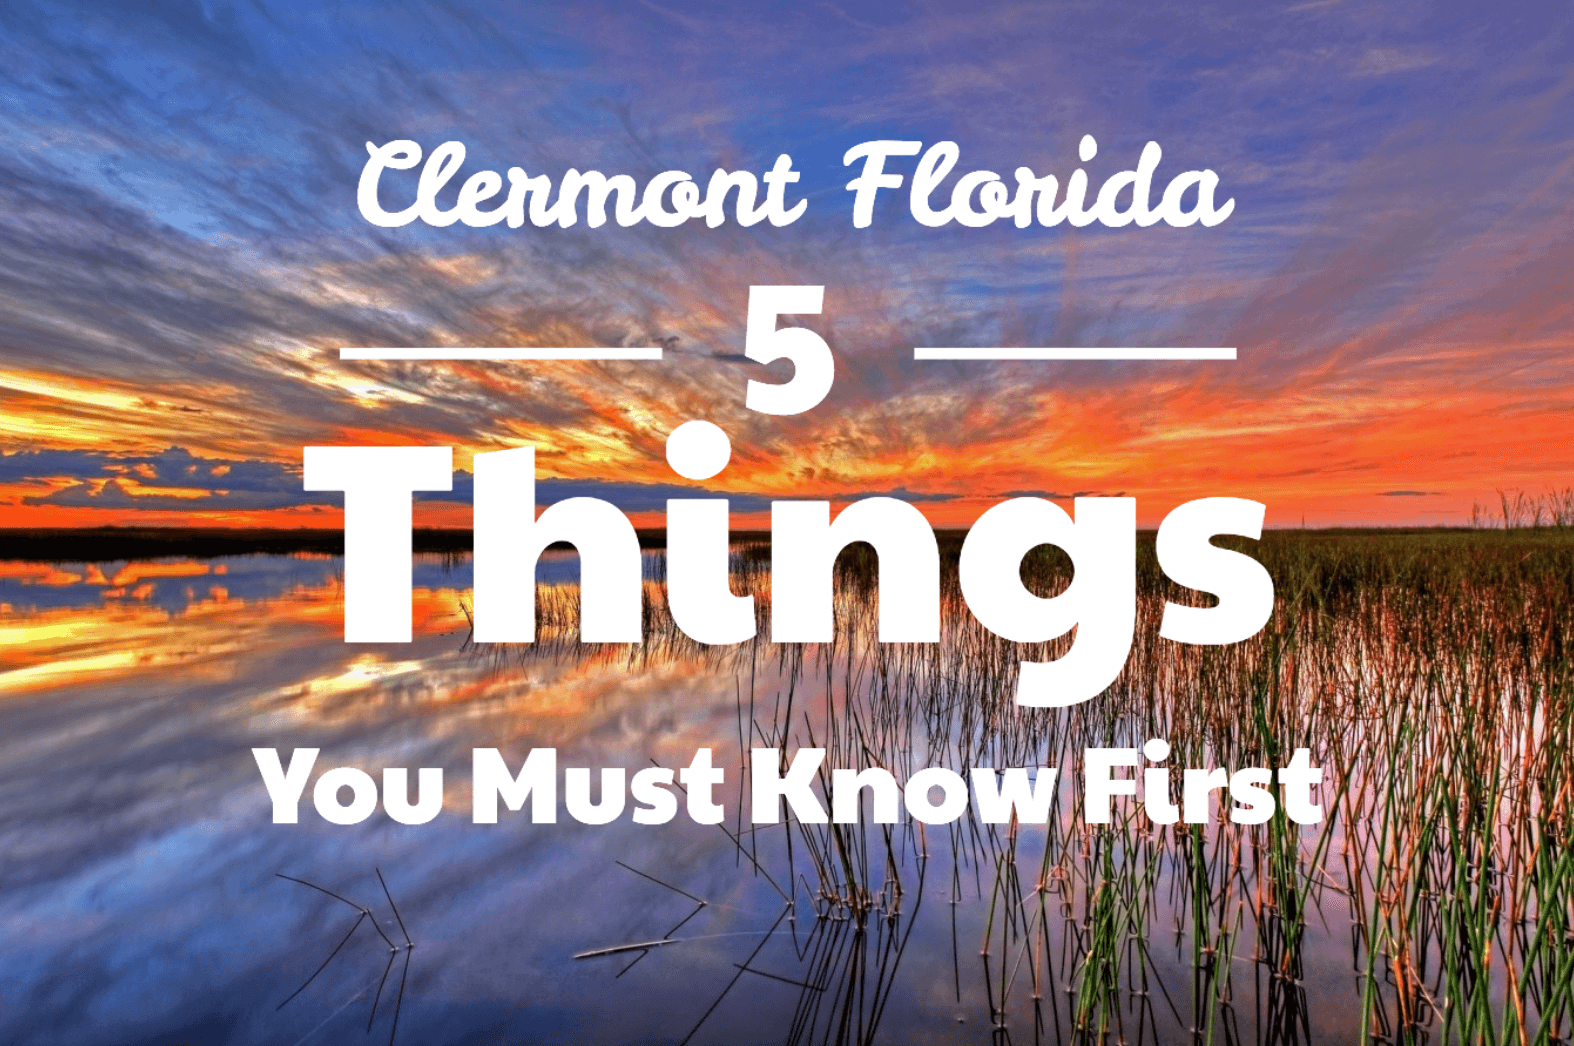 Moving to Clermont Florida: 5 Things You Must Know First